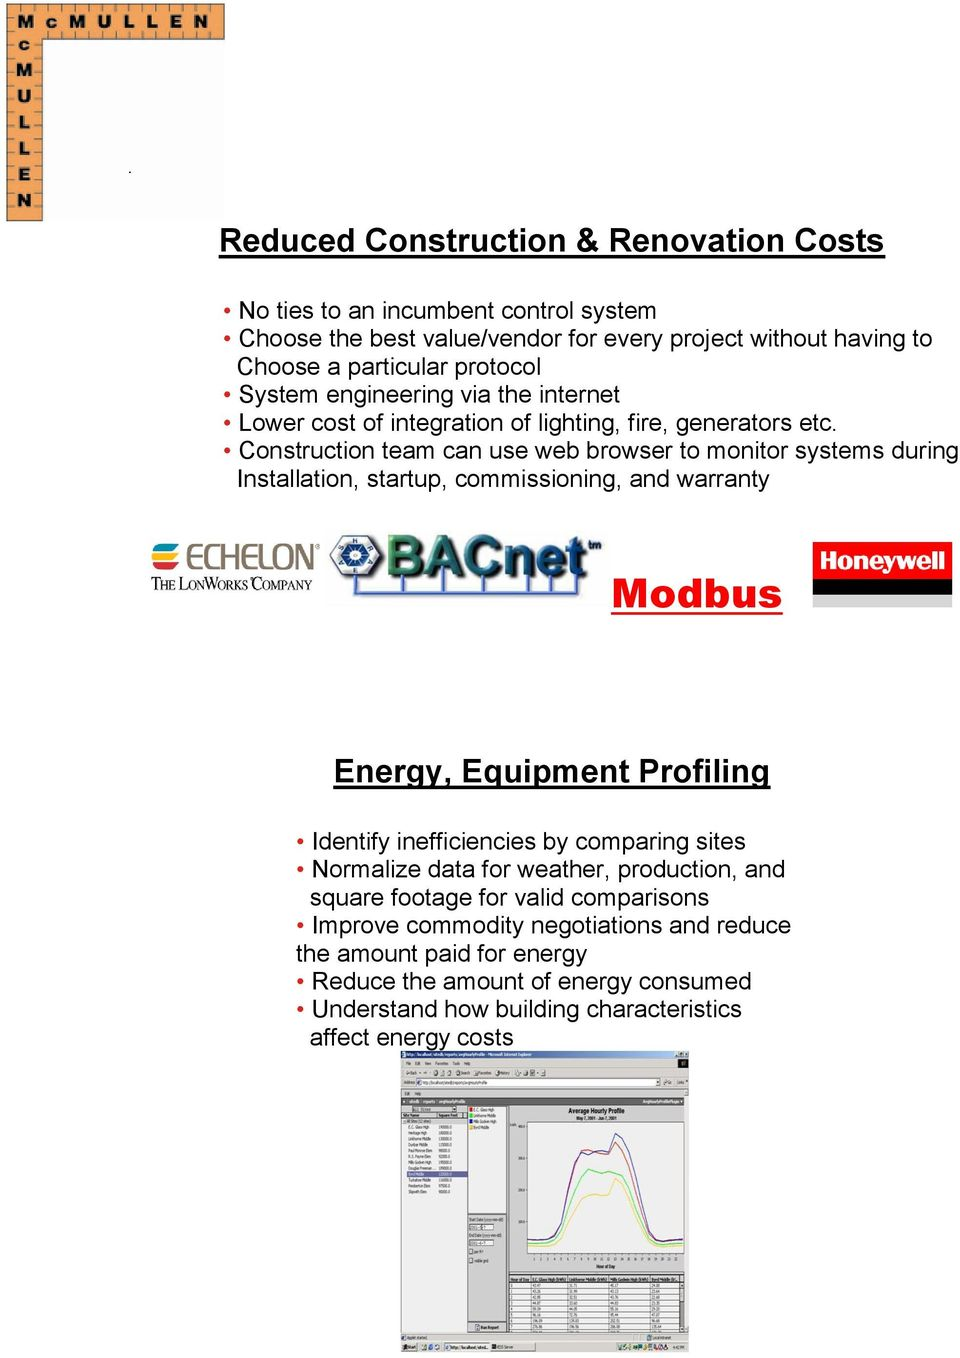 Construction team can use web browser to monitor systems during Installation, startup, commissioning, and warranty Modbus Energy, Equipment Profiling Identify inefficiencies by